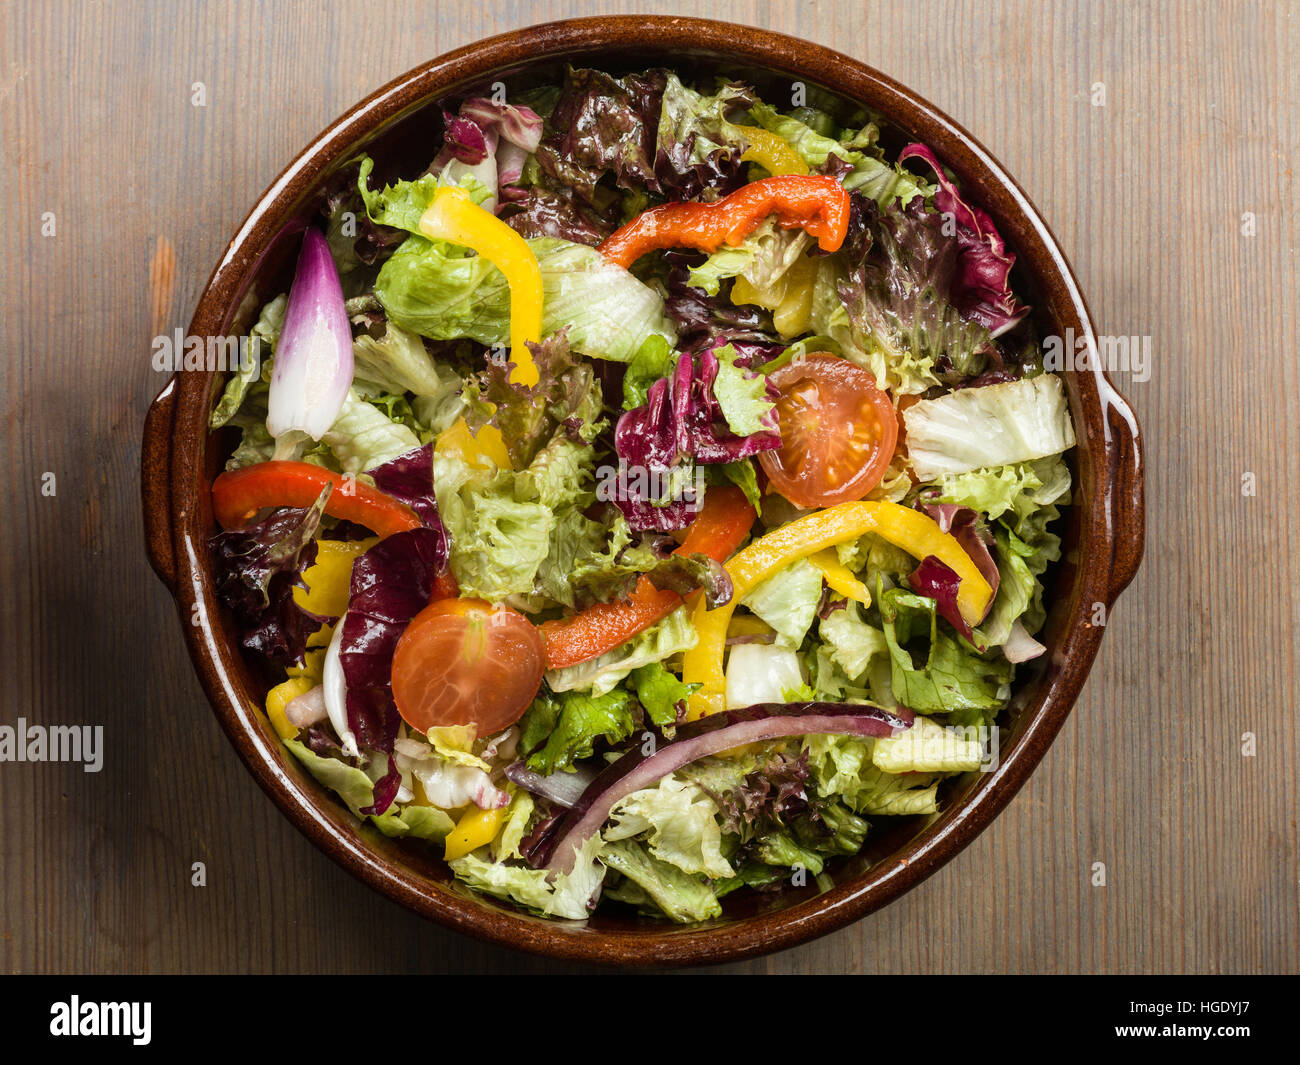 Bowl of Fresh Mixed Garden Salad Stock Photo: 130614127 - Alamy